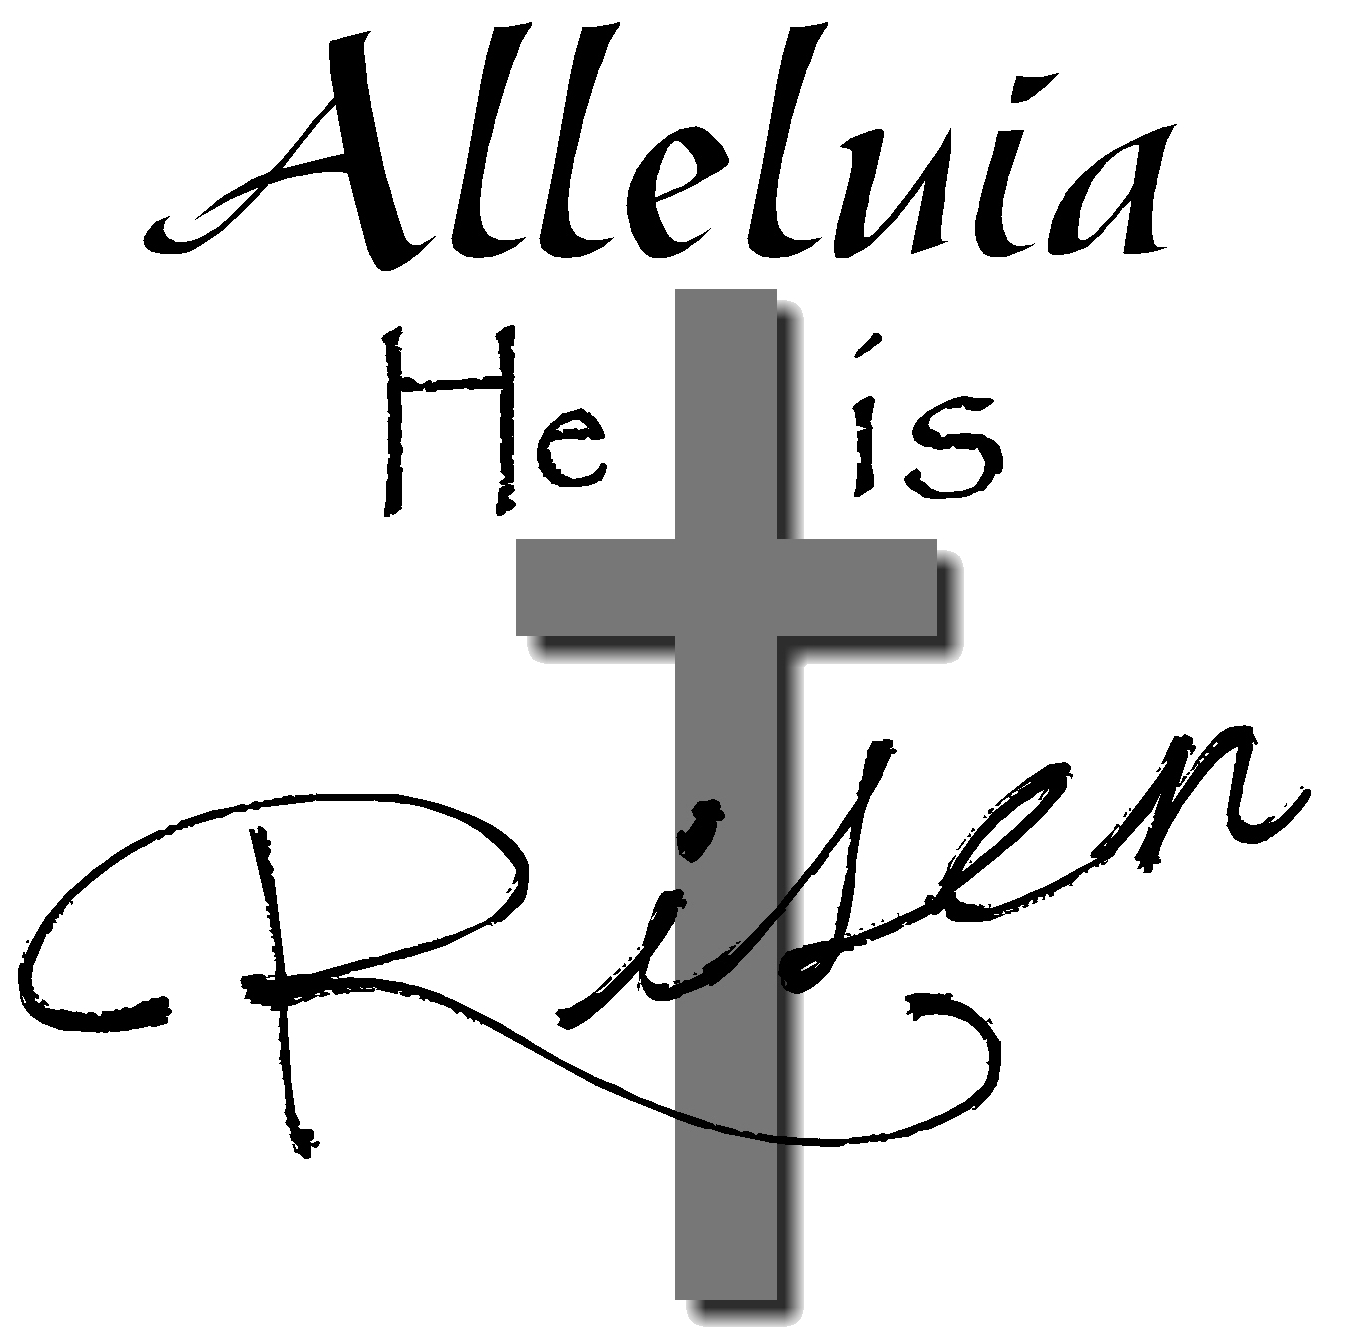 Religious easter clipart black and white 5 » Clipart Station.